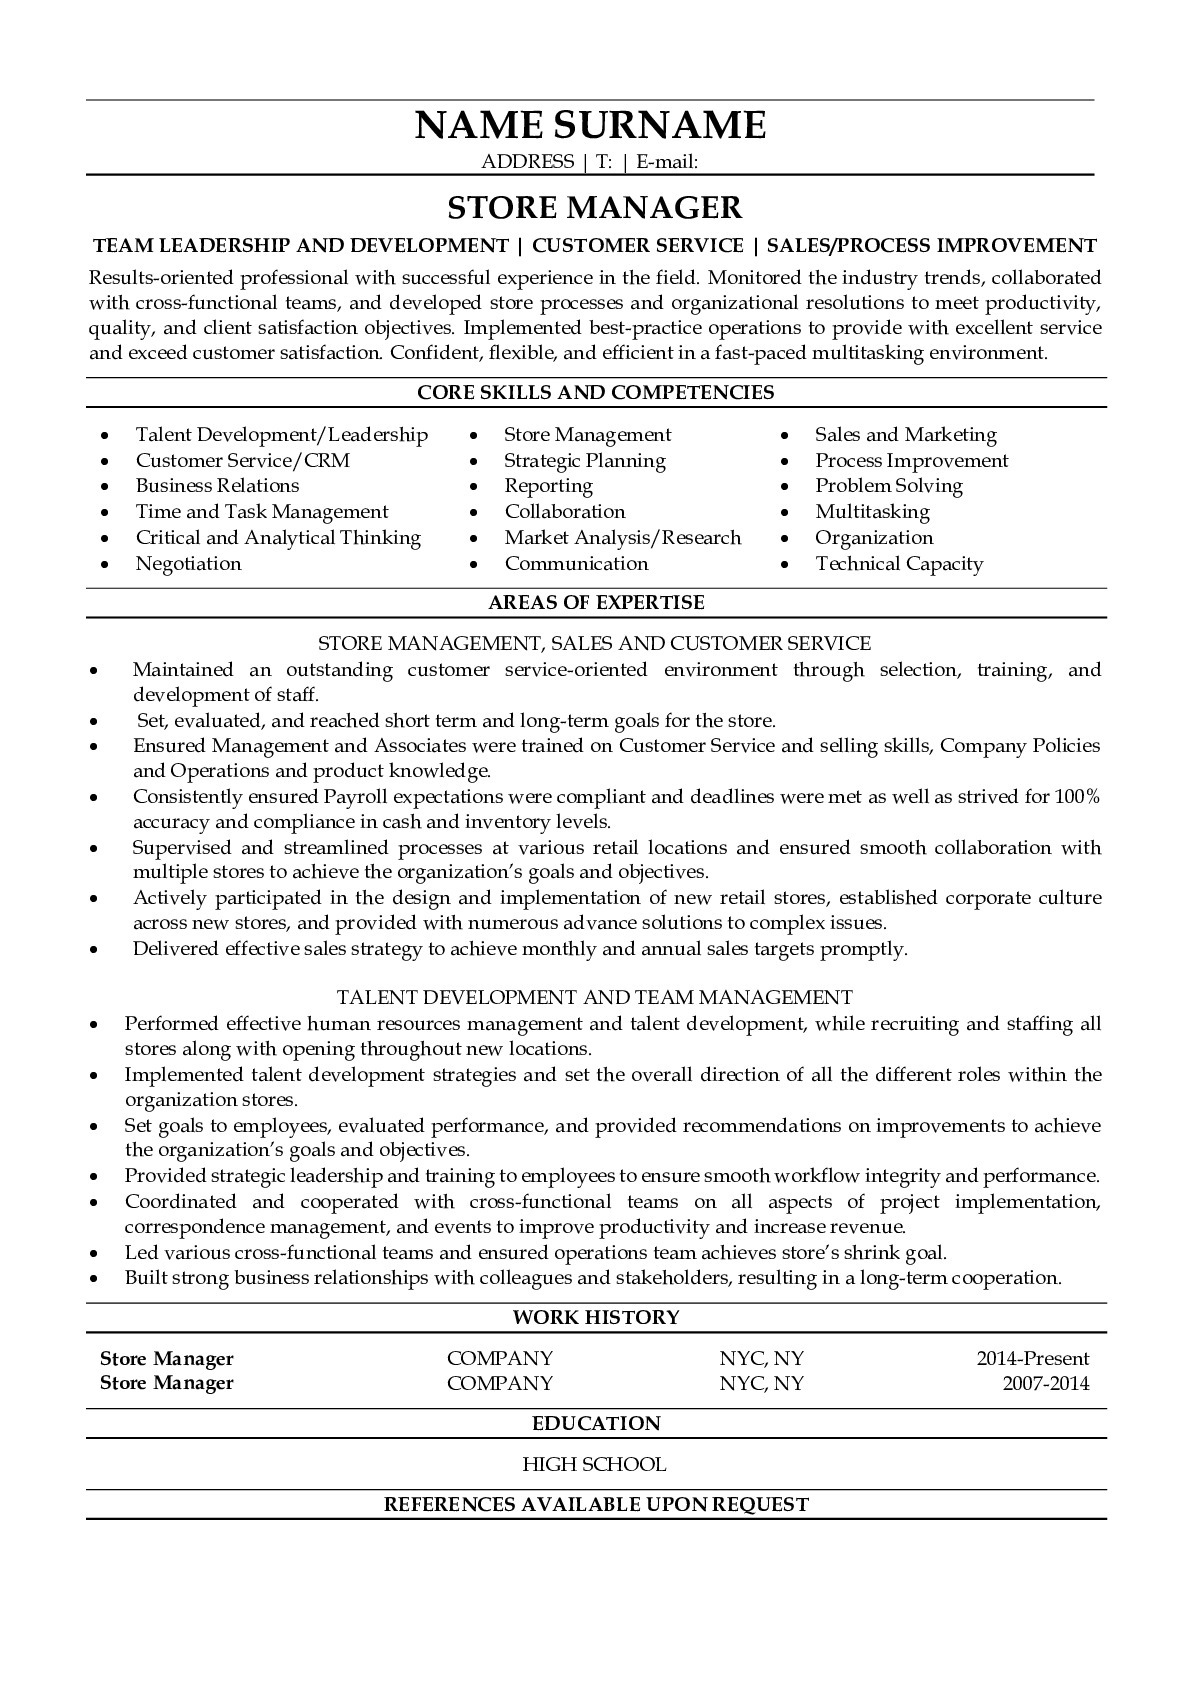 Resume for Store Manager